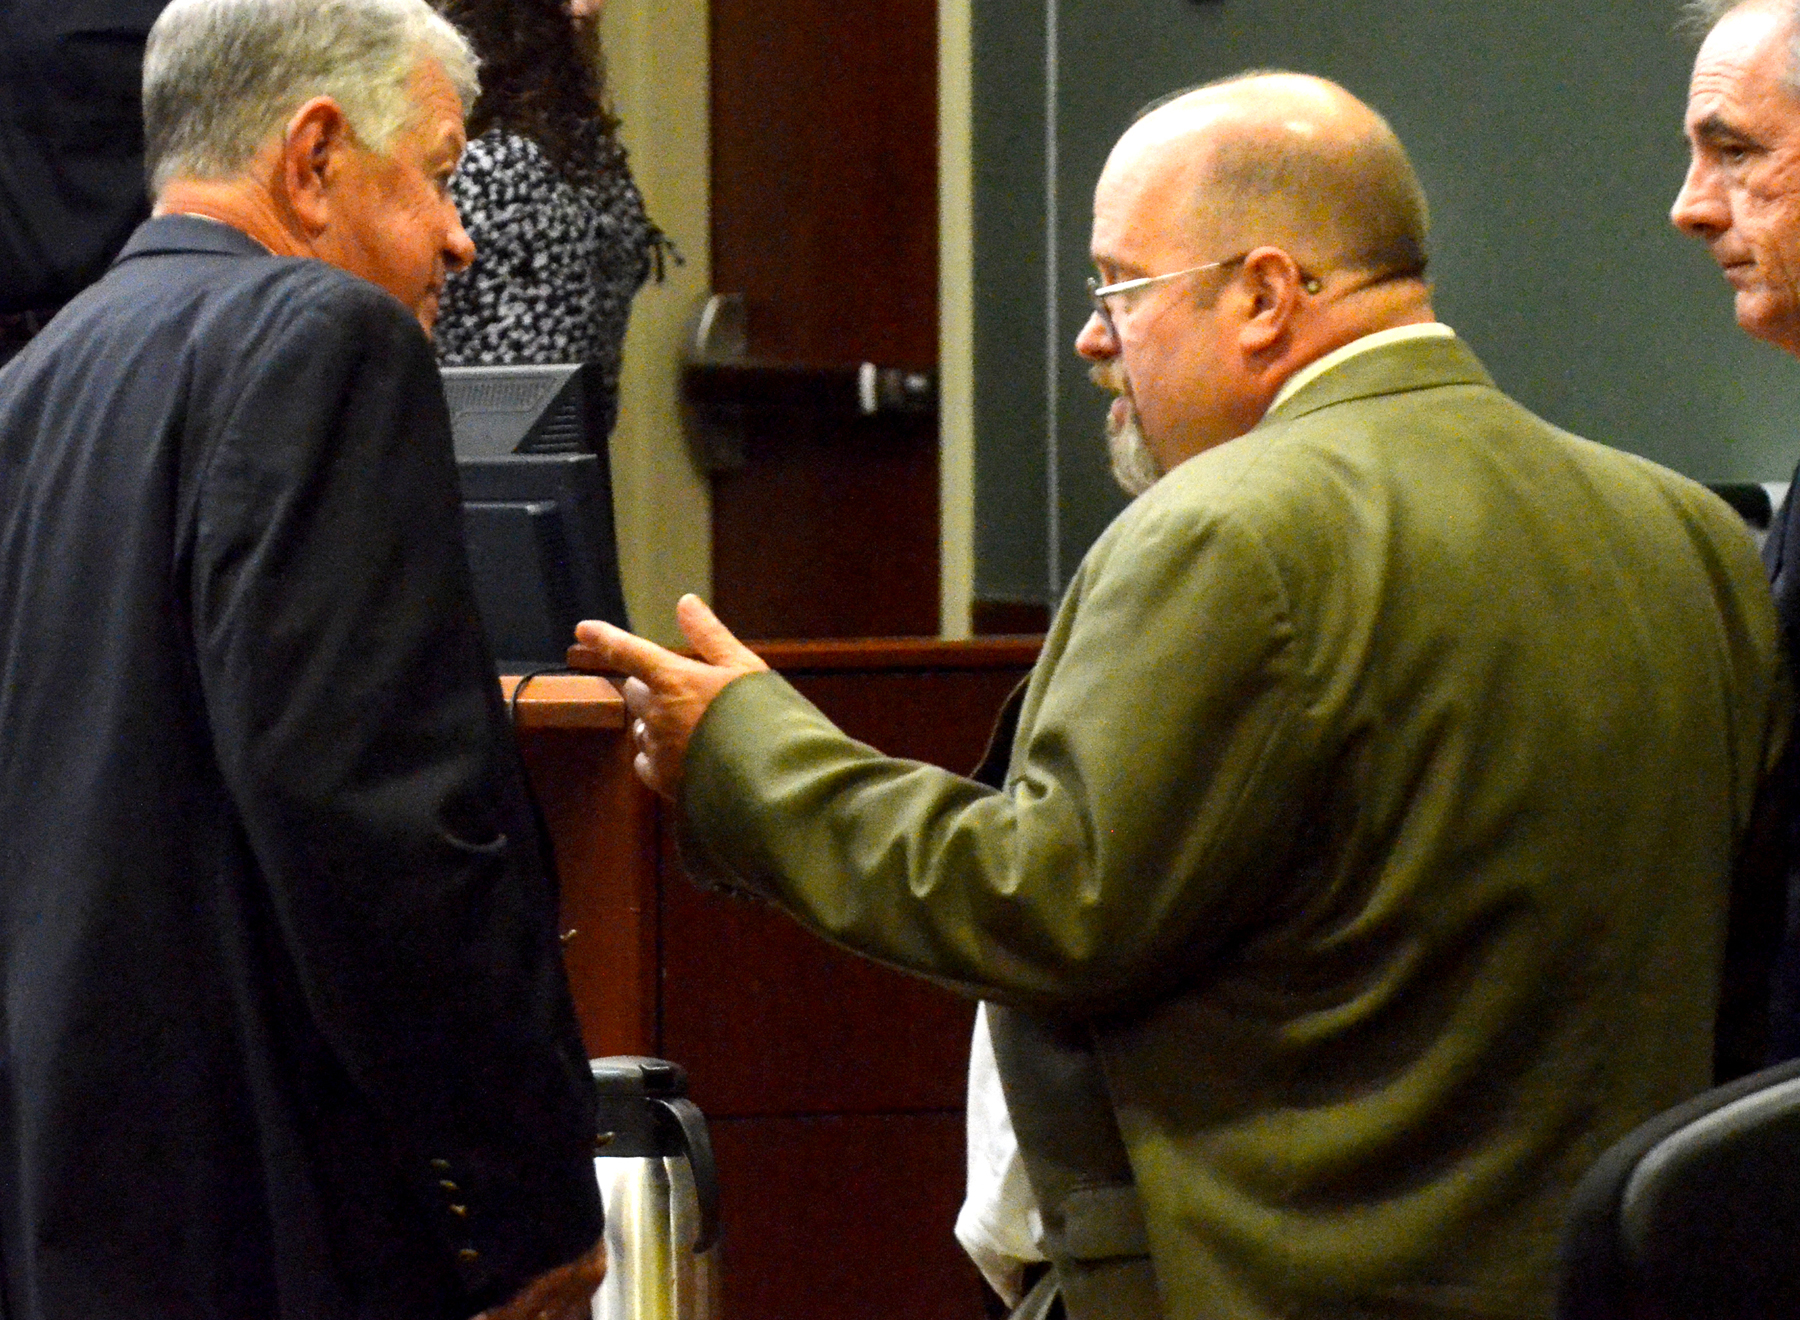 Chantry Trial: Jury deliberations to continue Tuesday in pastor